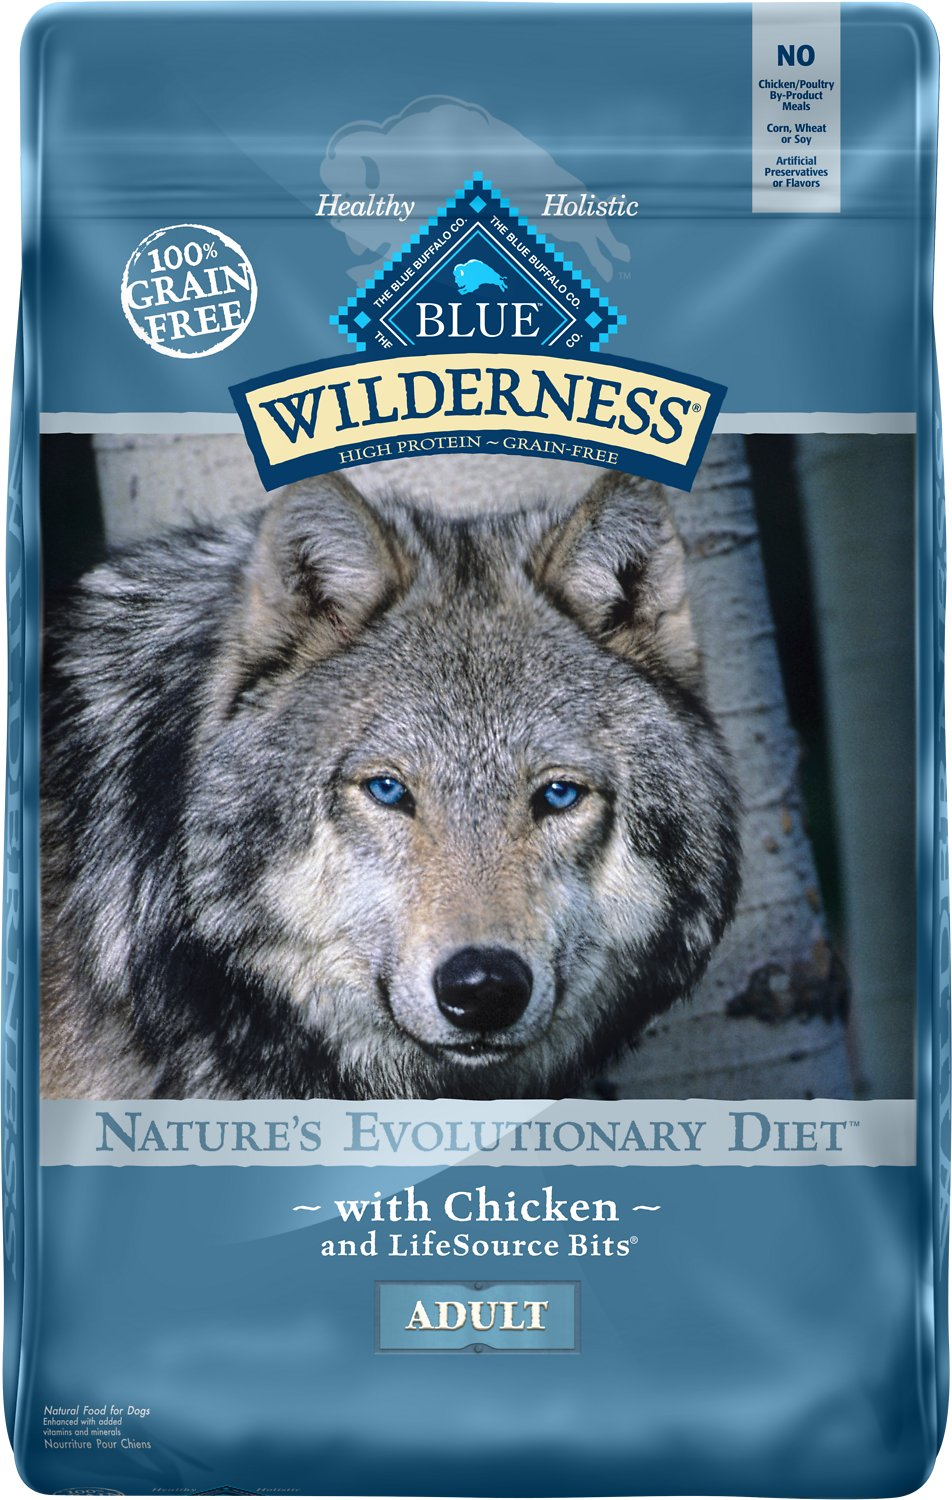 Blue Buffalo Wilderness Chicken Recipe Grain-Free Dry Dog Food Image